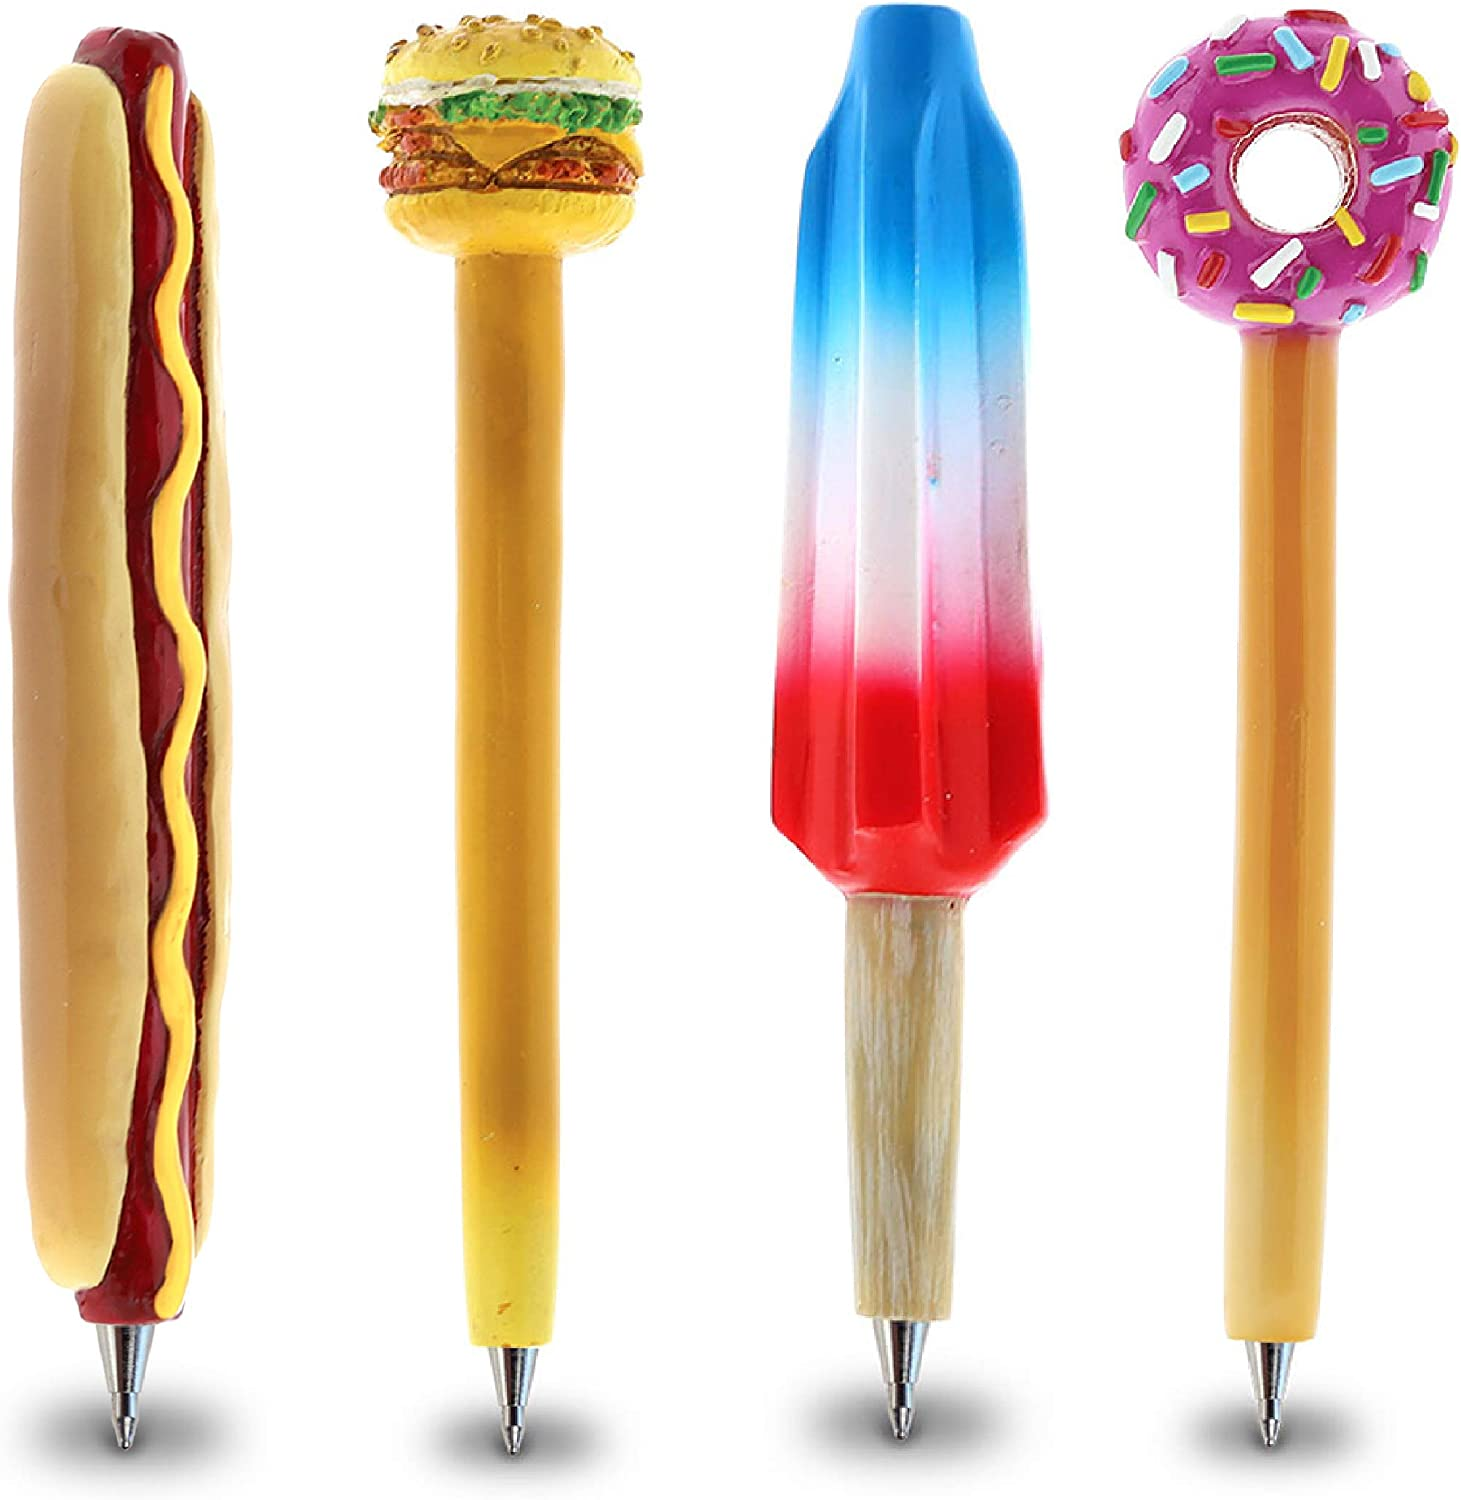 Planet Pens Bundle of Hot Dog, Cheeseburger, Ice Treat, Sparkle Pink Donut Novelty Pens - Unique Office Supplies Ballpoint Pens Colorful Food & Treats Writing Pens For School and Office Decor - 4 Pack